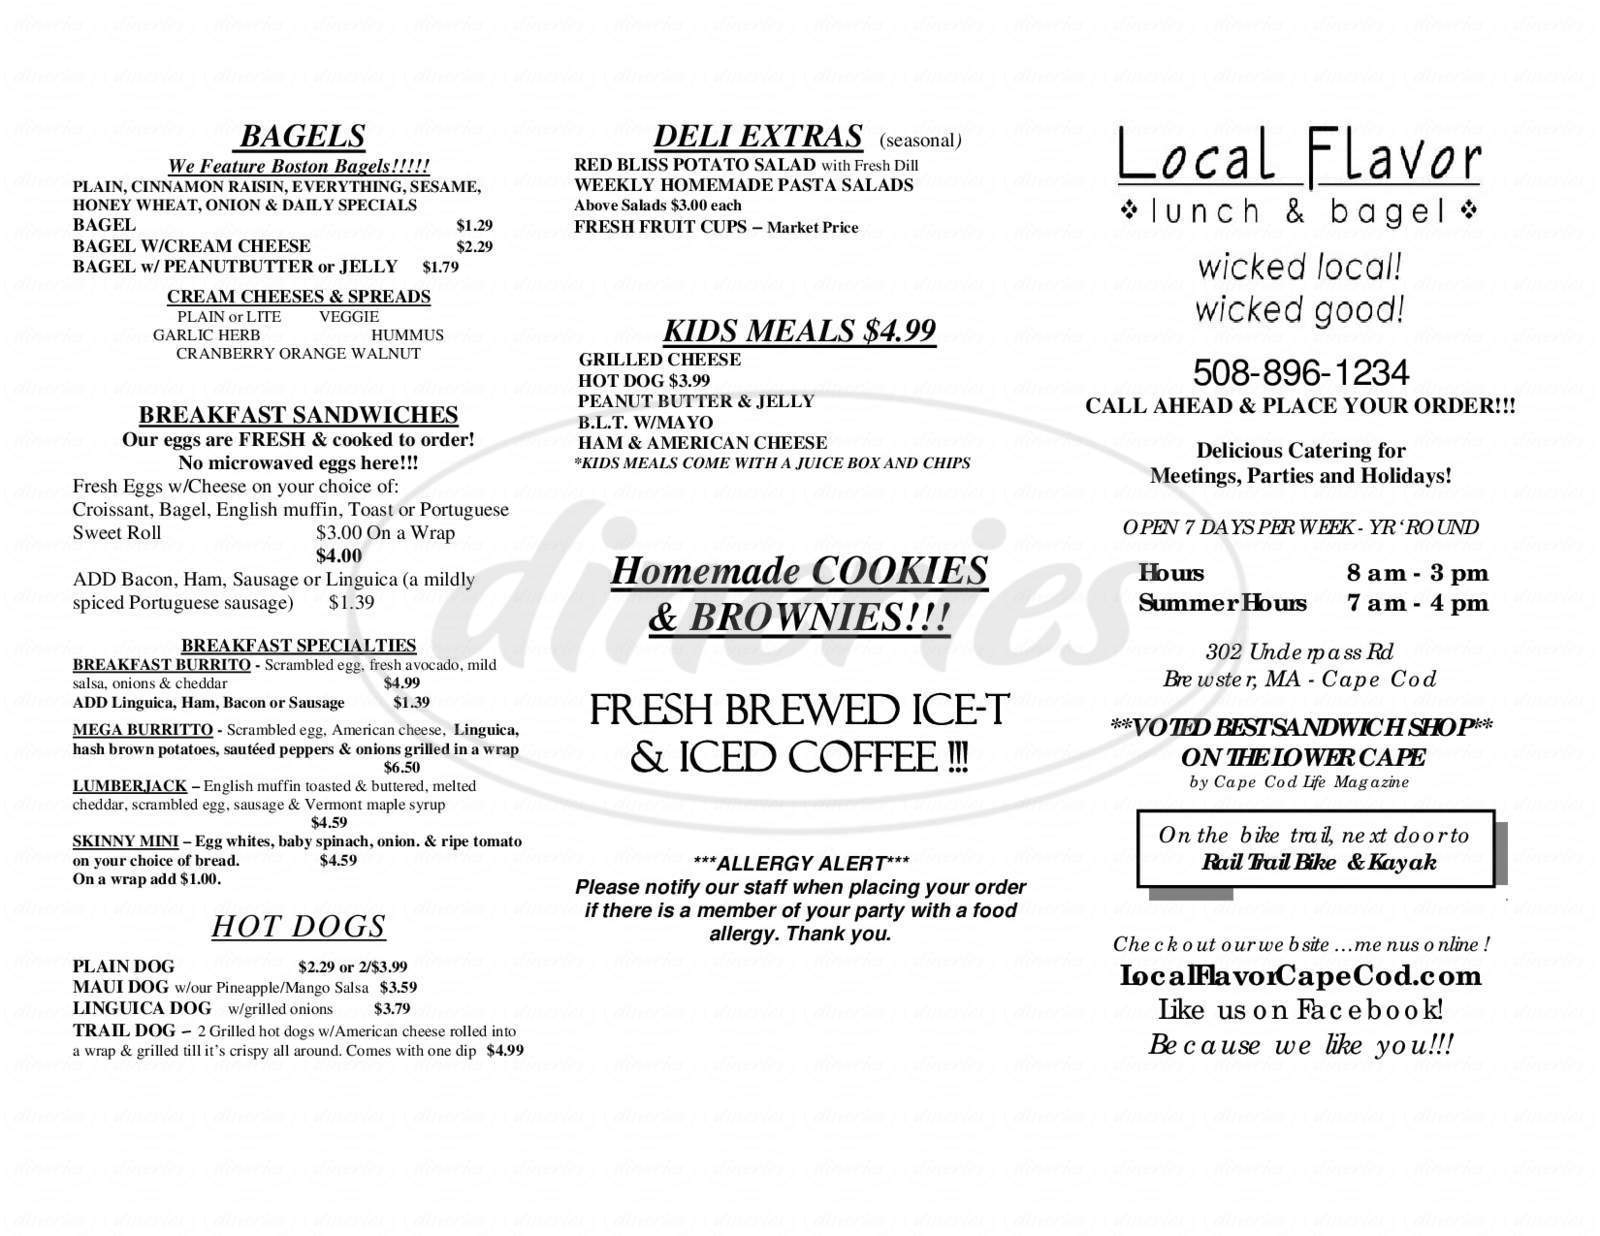 menu for Local Flavor